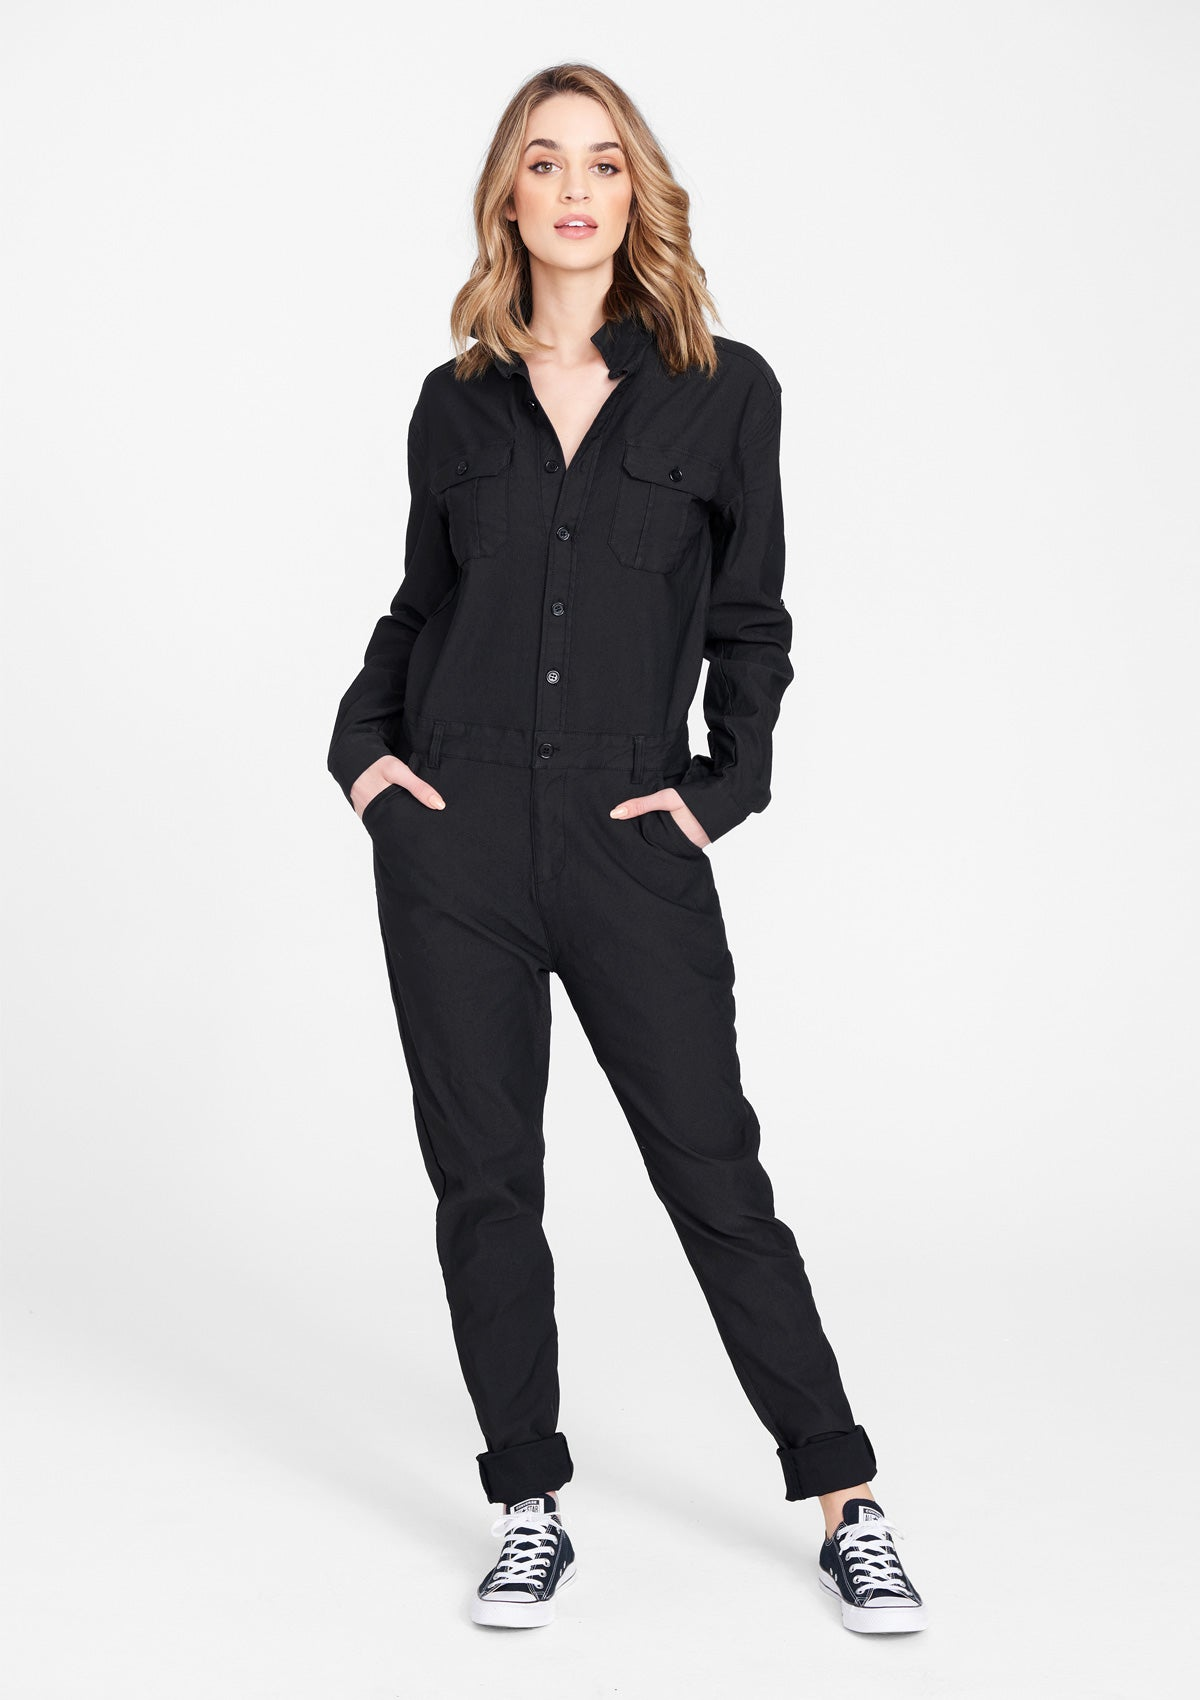 Alloy Apparel Tall Limited Edition Cargo Jumpsuit for Women in Black Size 2XL | Cotton